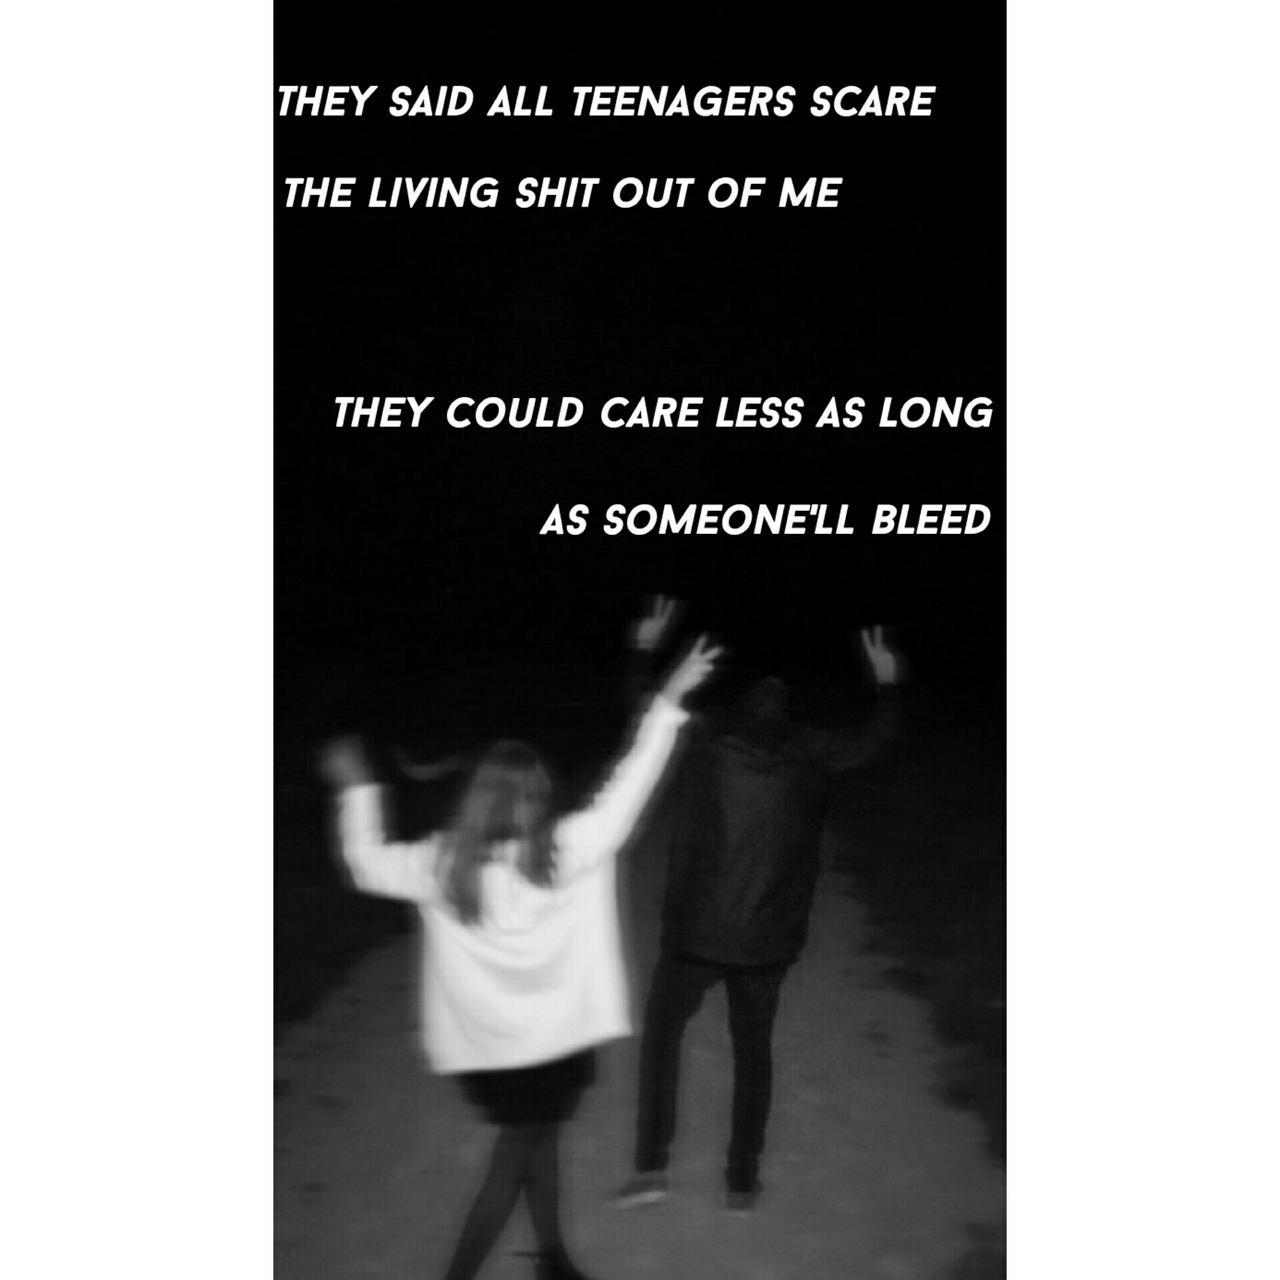 Wallpaper Lockscreen With Lyrics From Teenagers By My